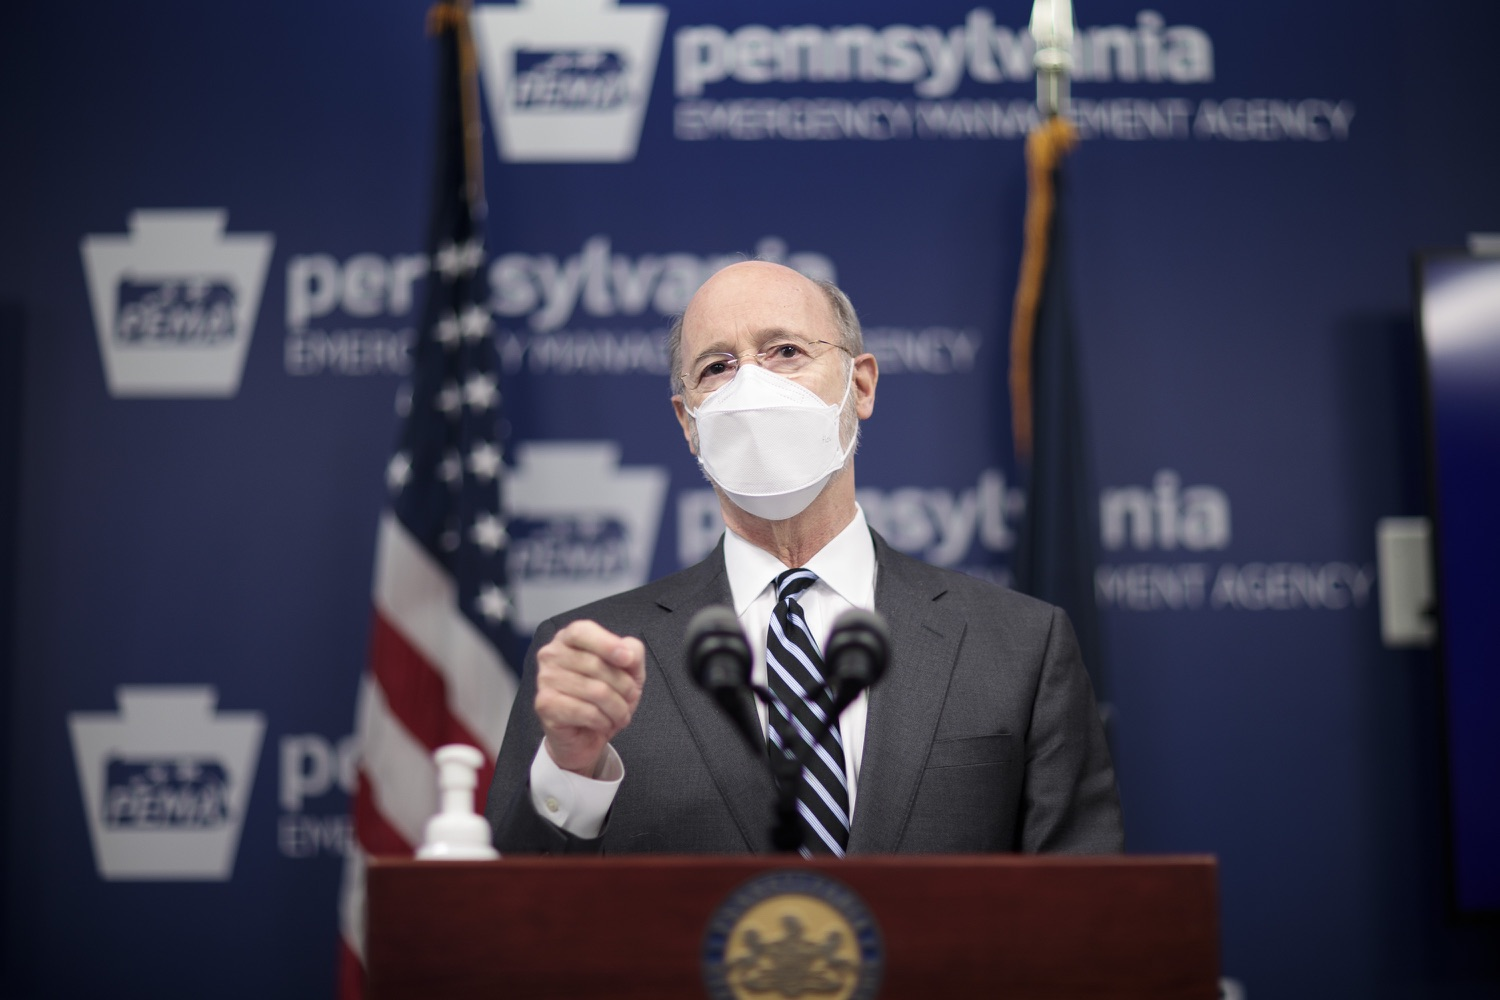 "<a href=""https://filesource.wostreaming.net/commonwealthofpa/photo/18521_gov_minimumWage_dz_06.jpg"" target=""_blank"">⇣ Download Photo<br></a>Pennsylvania Governor Tom Wolf answers questions from the press.  Building on his plan to cut personal income taxes for 2.8 million Pennsylvanians, Governor Tom Wolf wants to help thousands of essential workers struggling to buy food and avoid homelessness because of poverty wages. Today, the governor renewed his call to increase the states embarrassingly low minimum wage to $12 per hour on July 1, with annual increases of $0.50 until reaching $15 per hour on July 1, 2027. FEBRUARY 09, 2021 - HARRISBURG, PA"